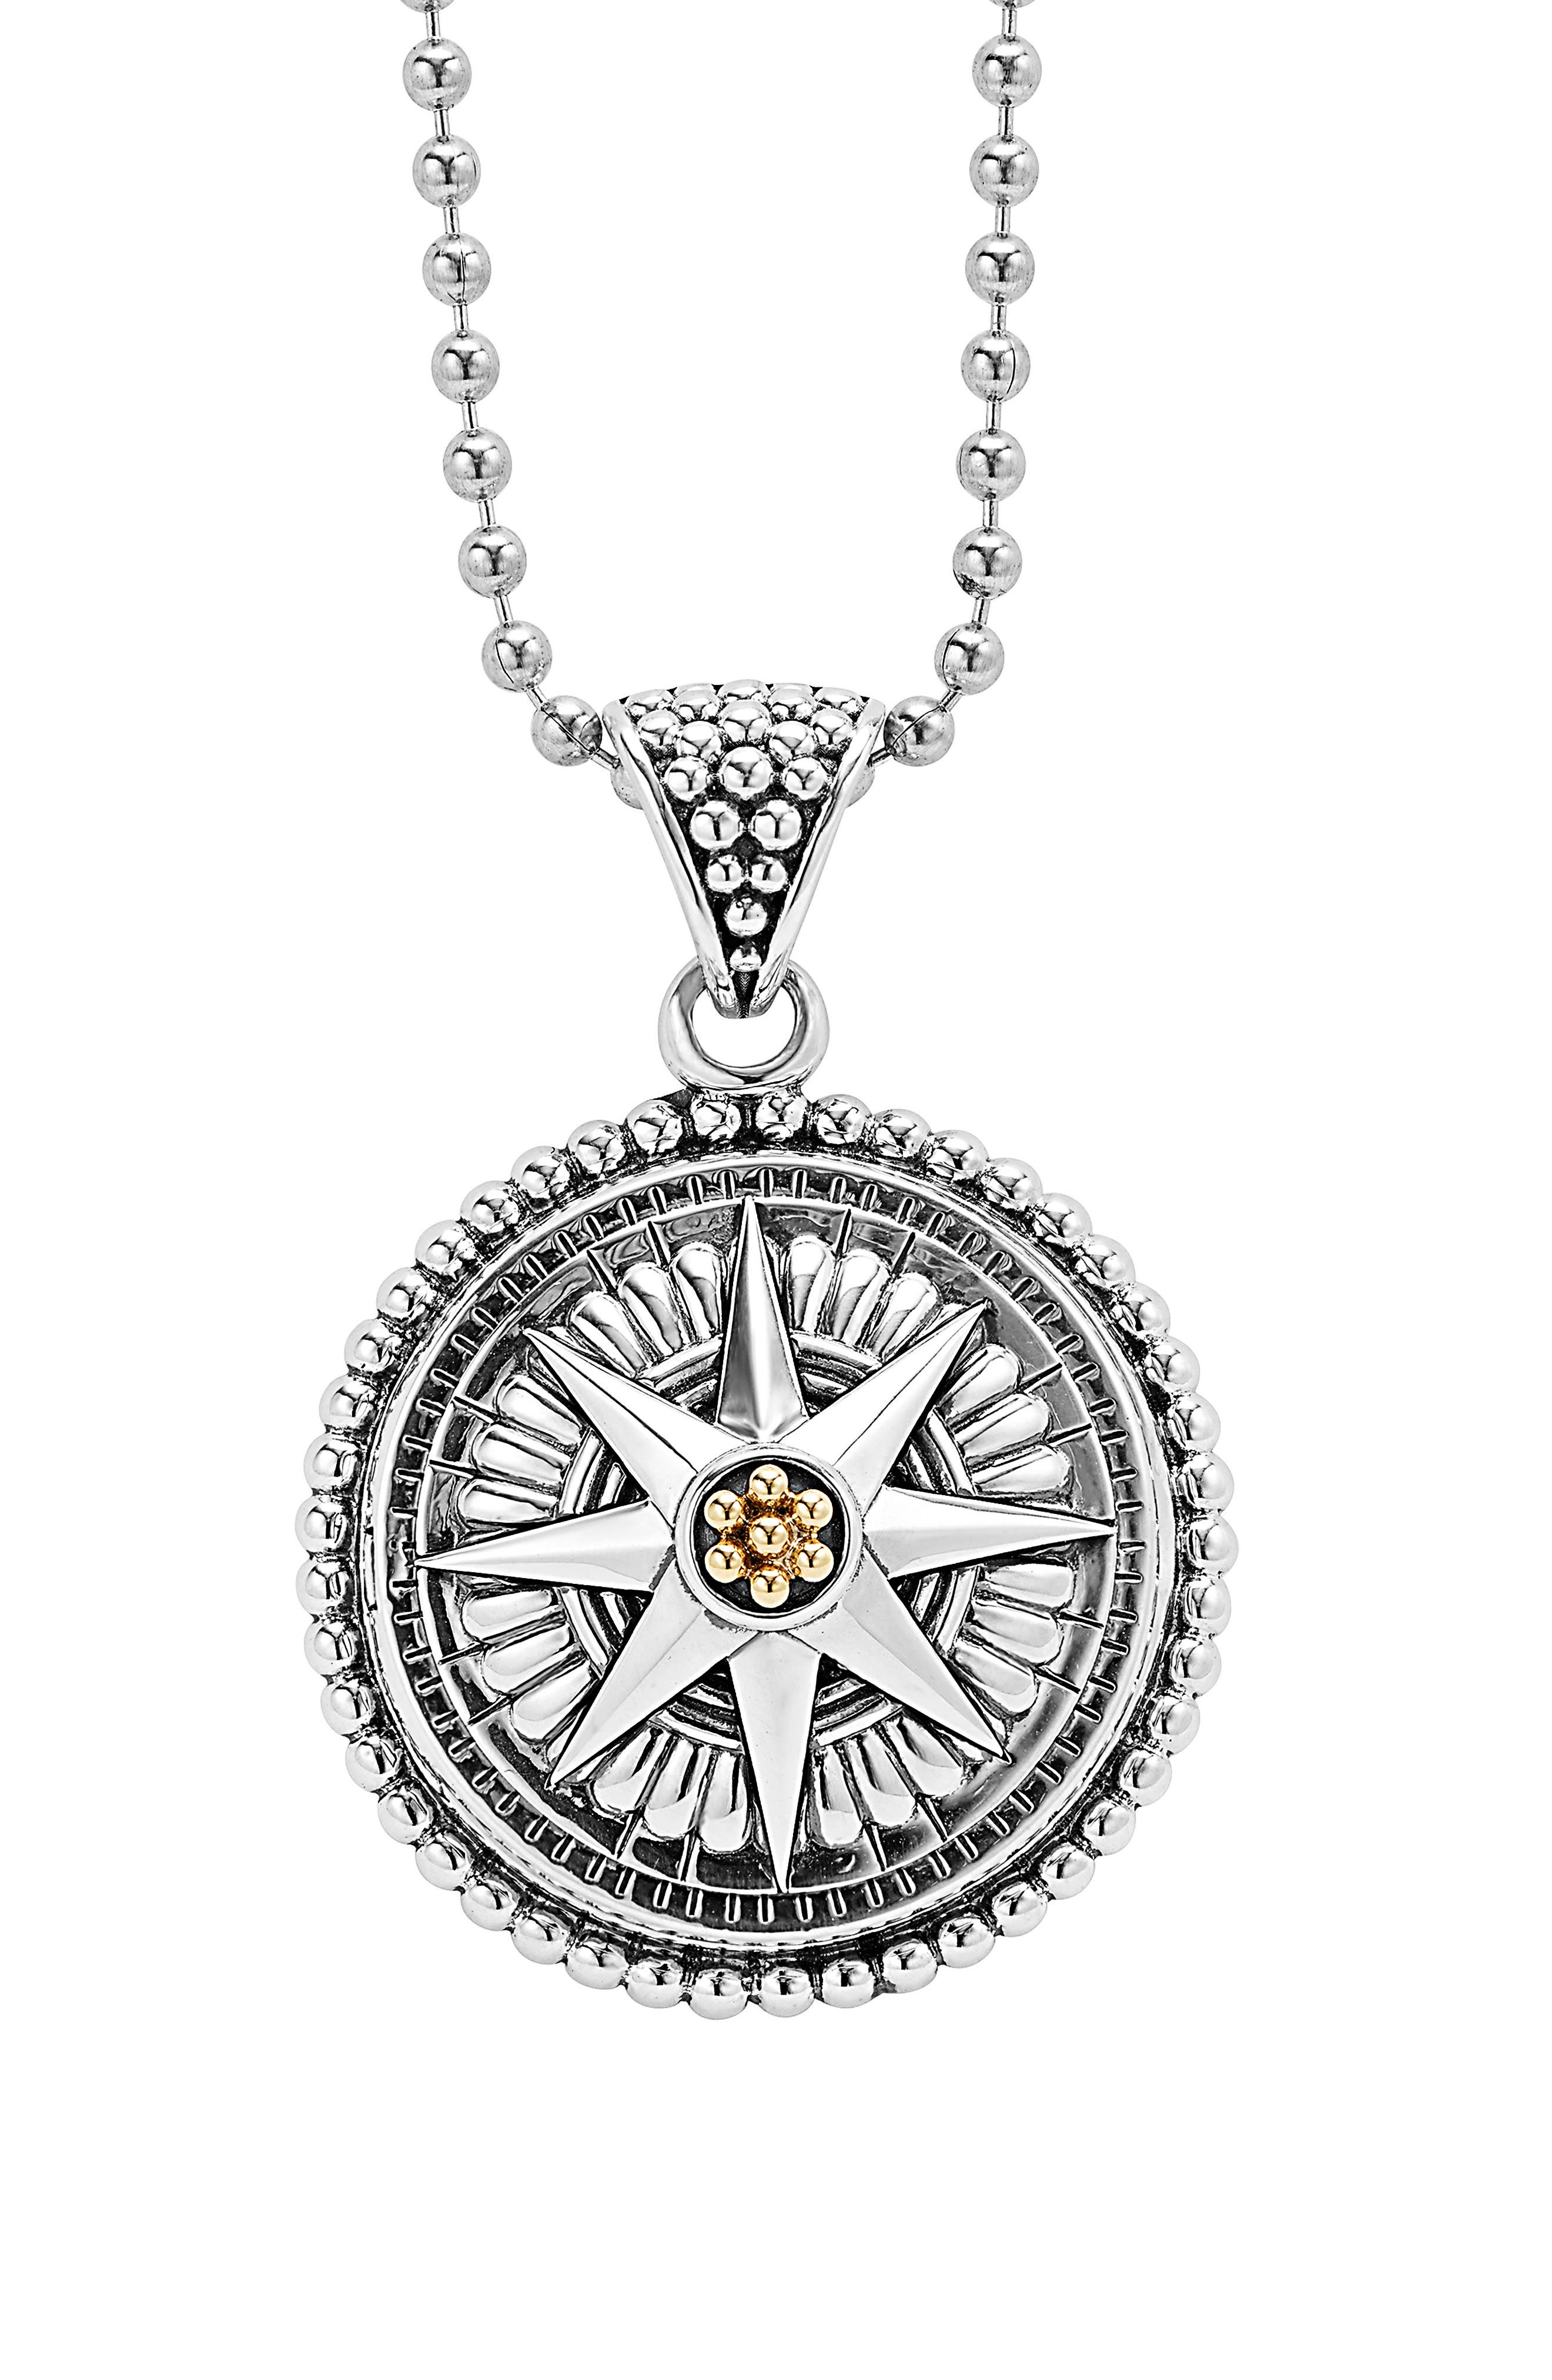 Signature Caviar Compass Pendant Necklace,                             Main thumbnail 1, color,                             SILVER